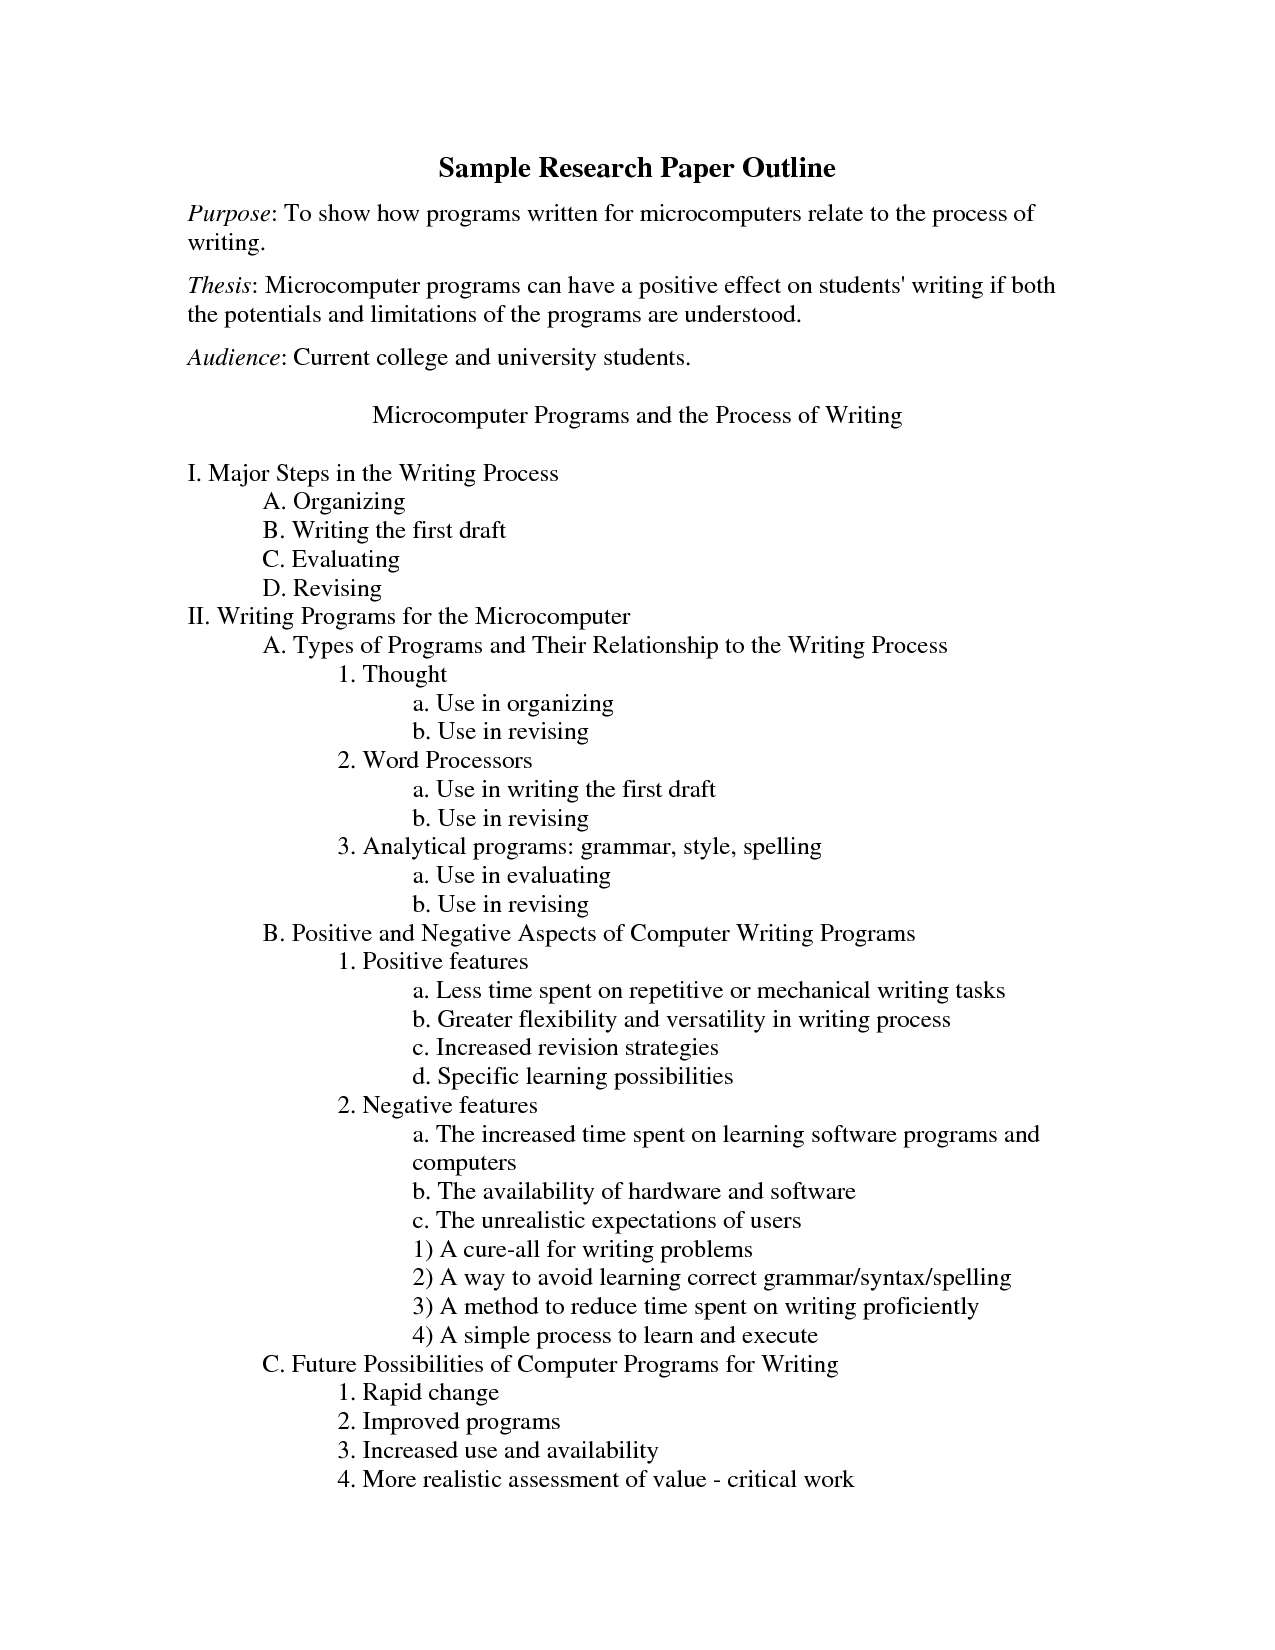 002 How To Make An Apa Research Paper Outline College Examples 477364 Astounding For A Style Full